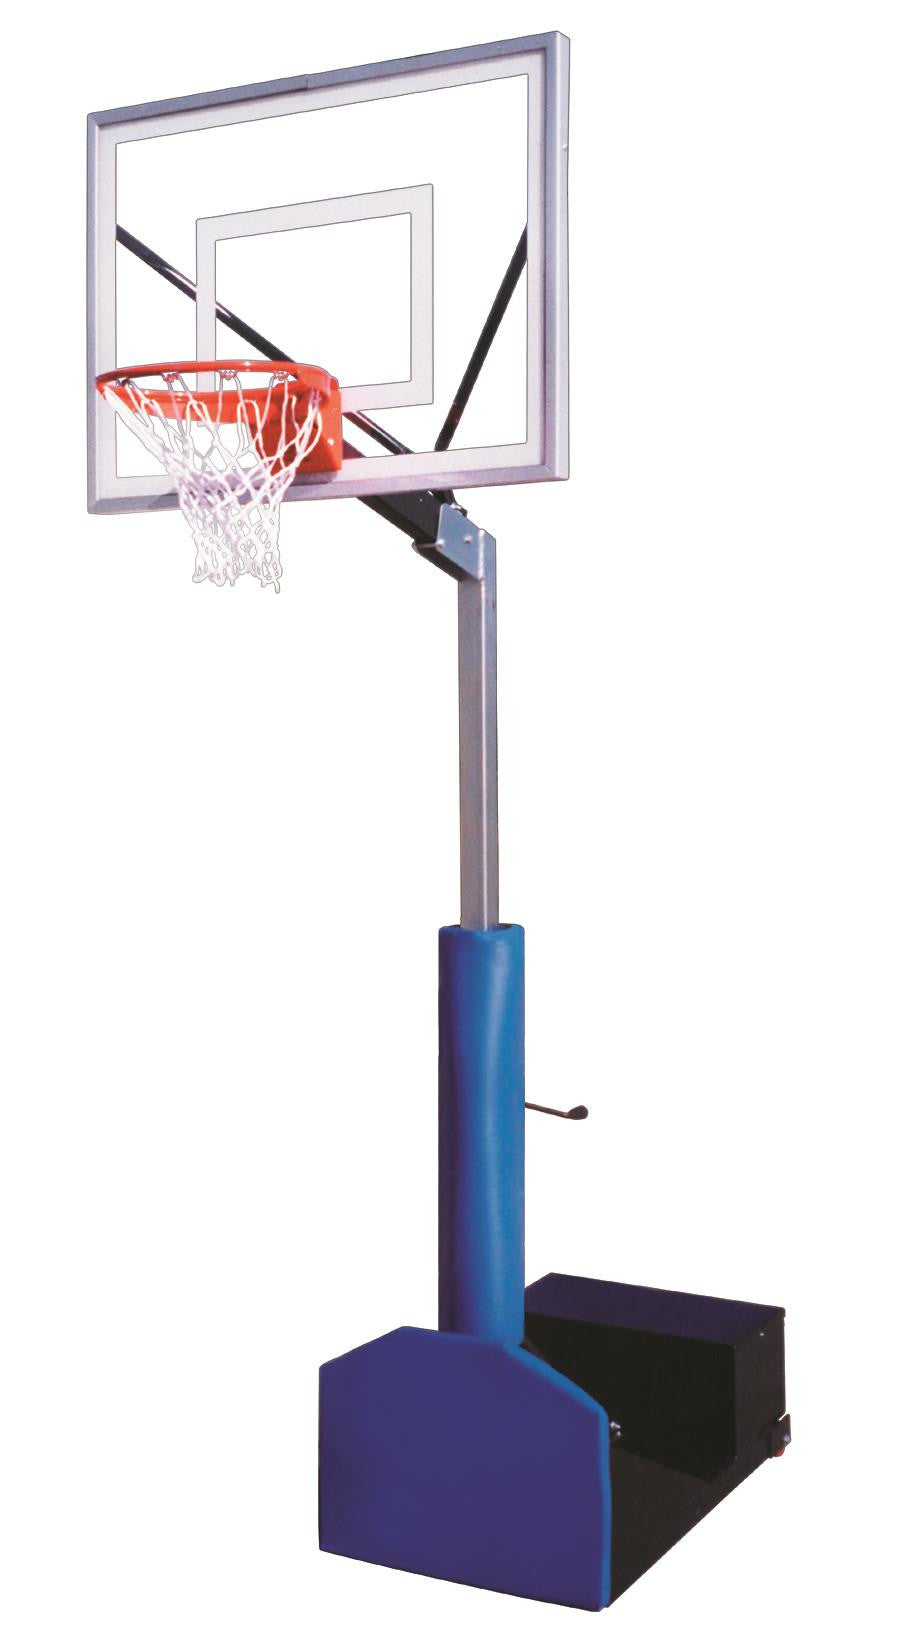 First Team Rampage III Adjustable Portable Basketball Hoop 54 inch Acrylic